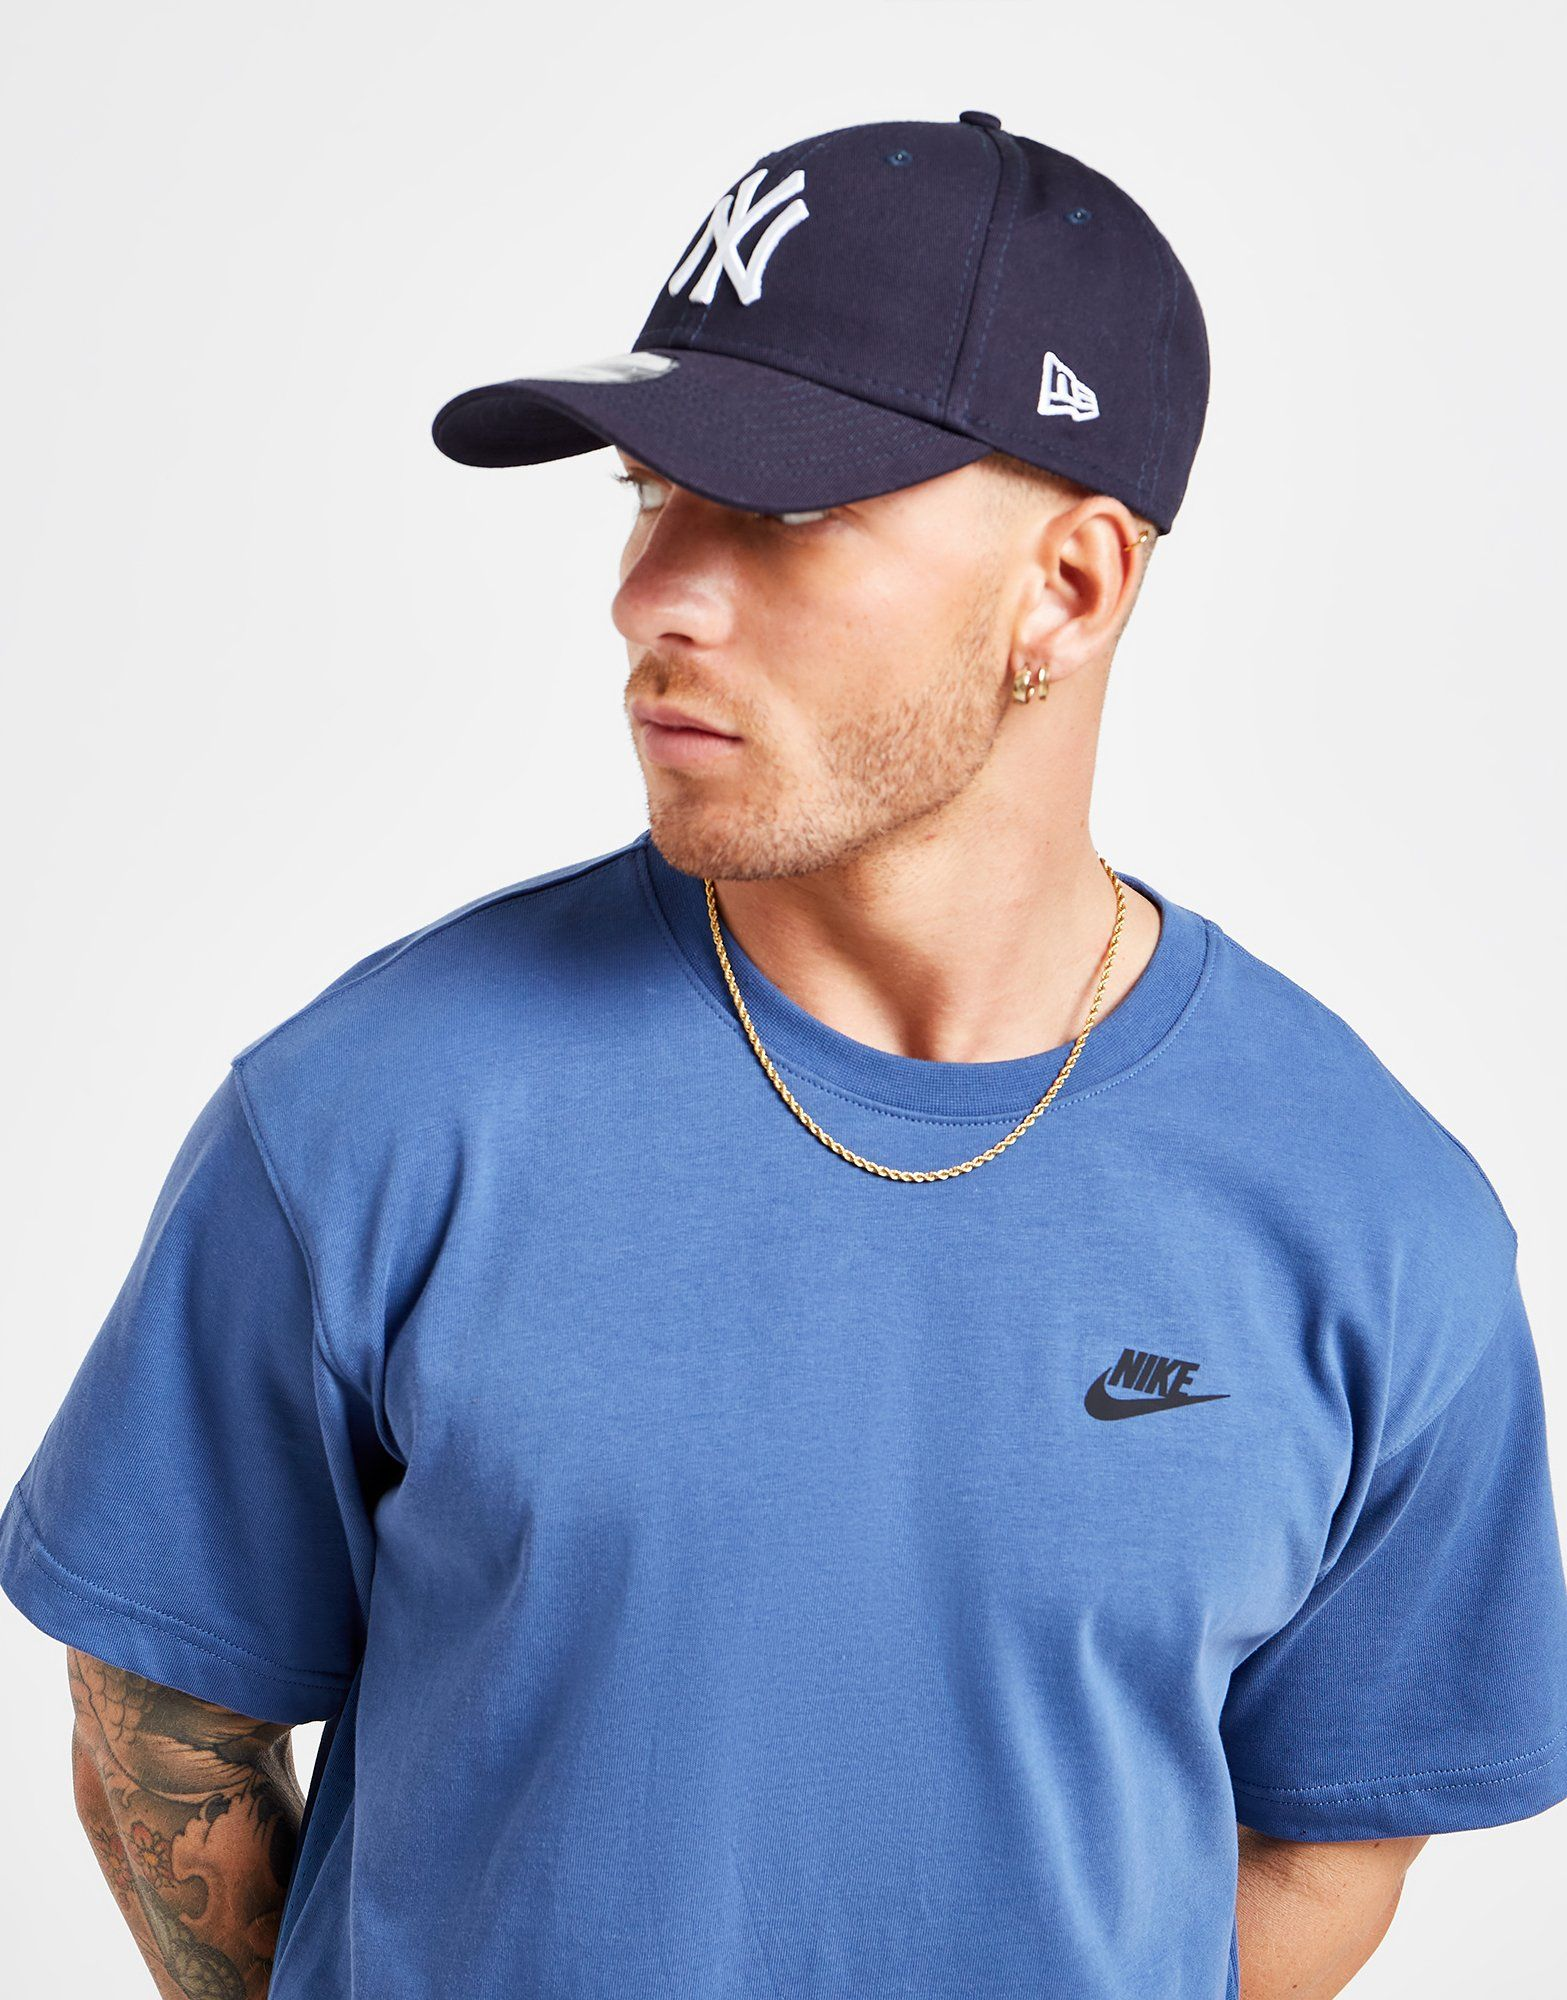 New Era MLB New York Yankees 9FORTY Cap  e7ee03d1c474